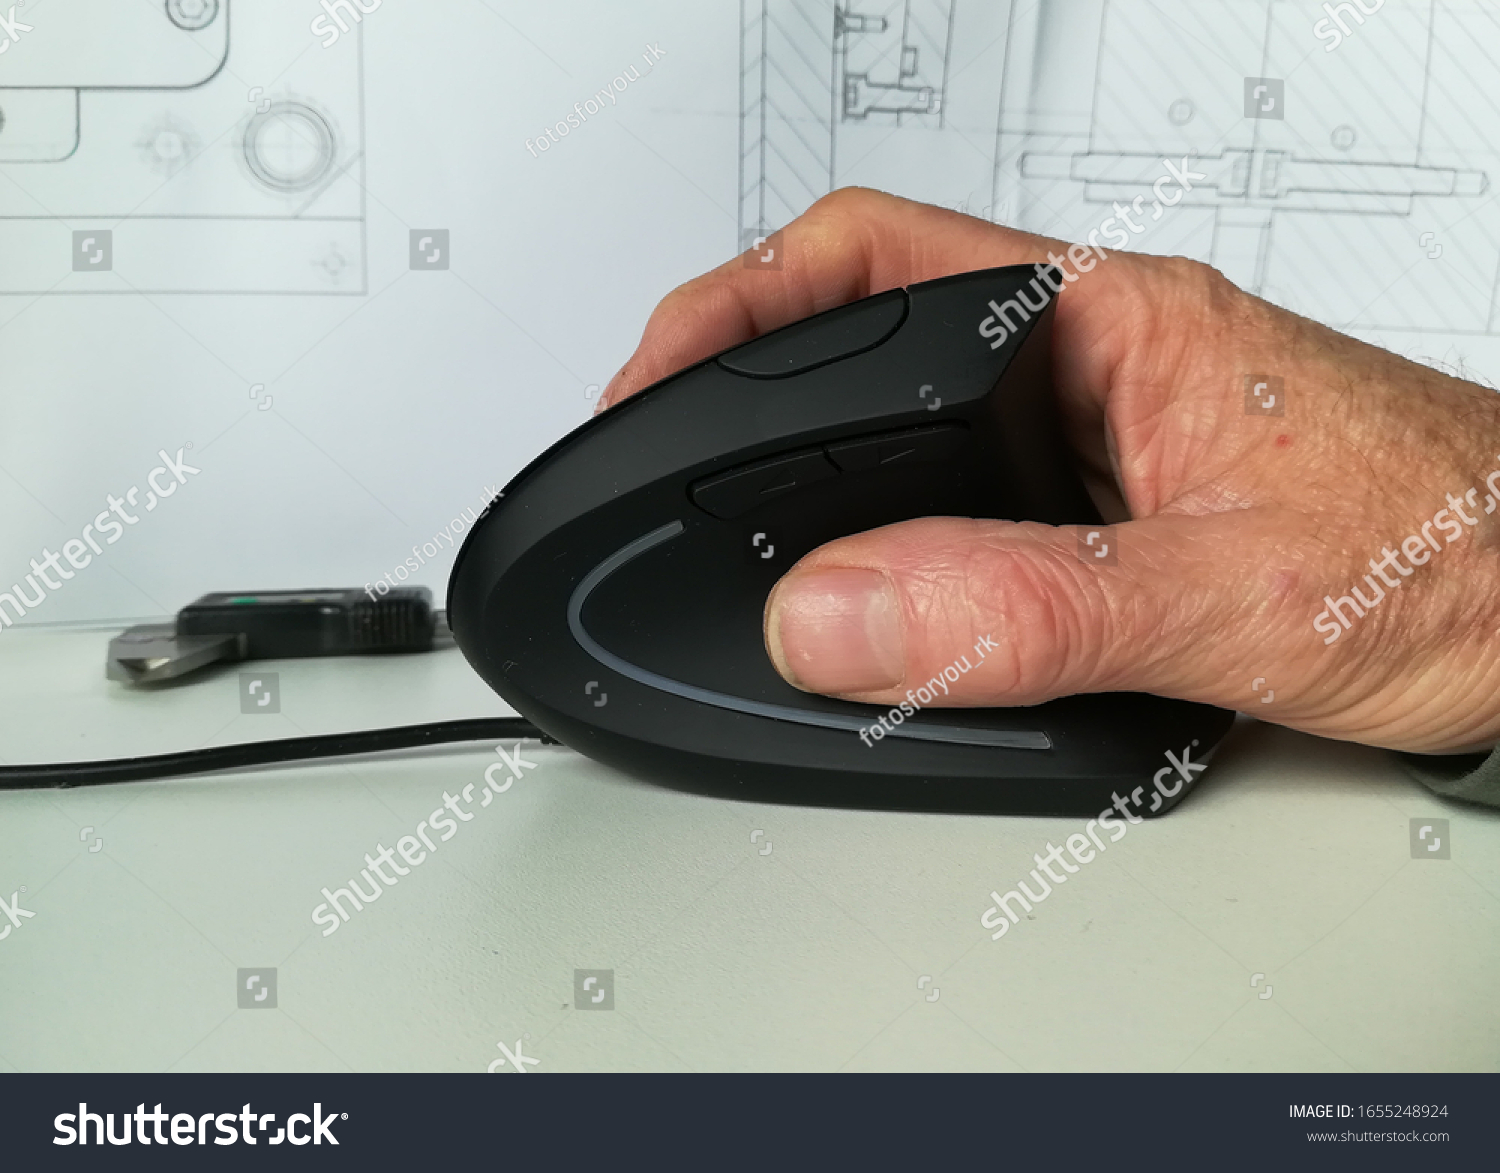 Male hand holding computer mouse with copy space. Construct with a 3d mouse